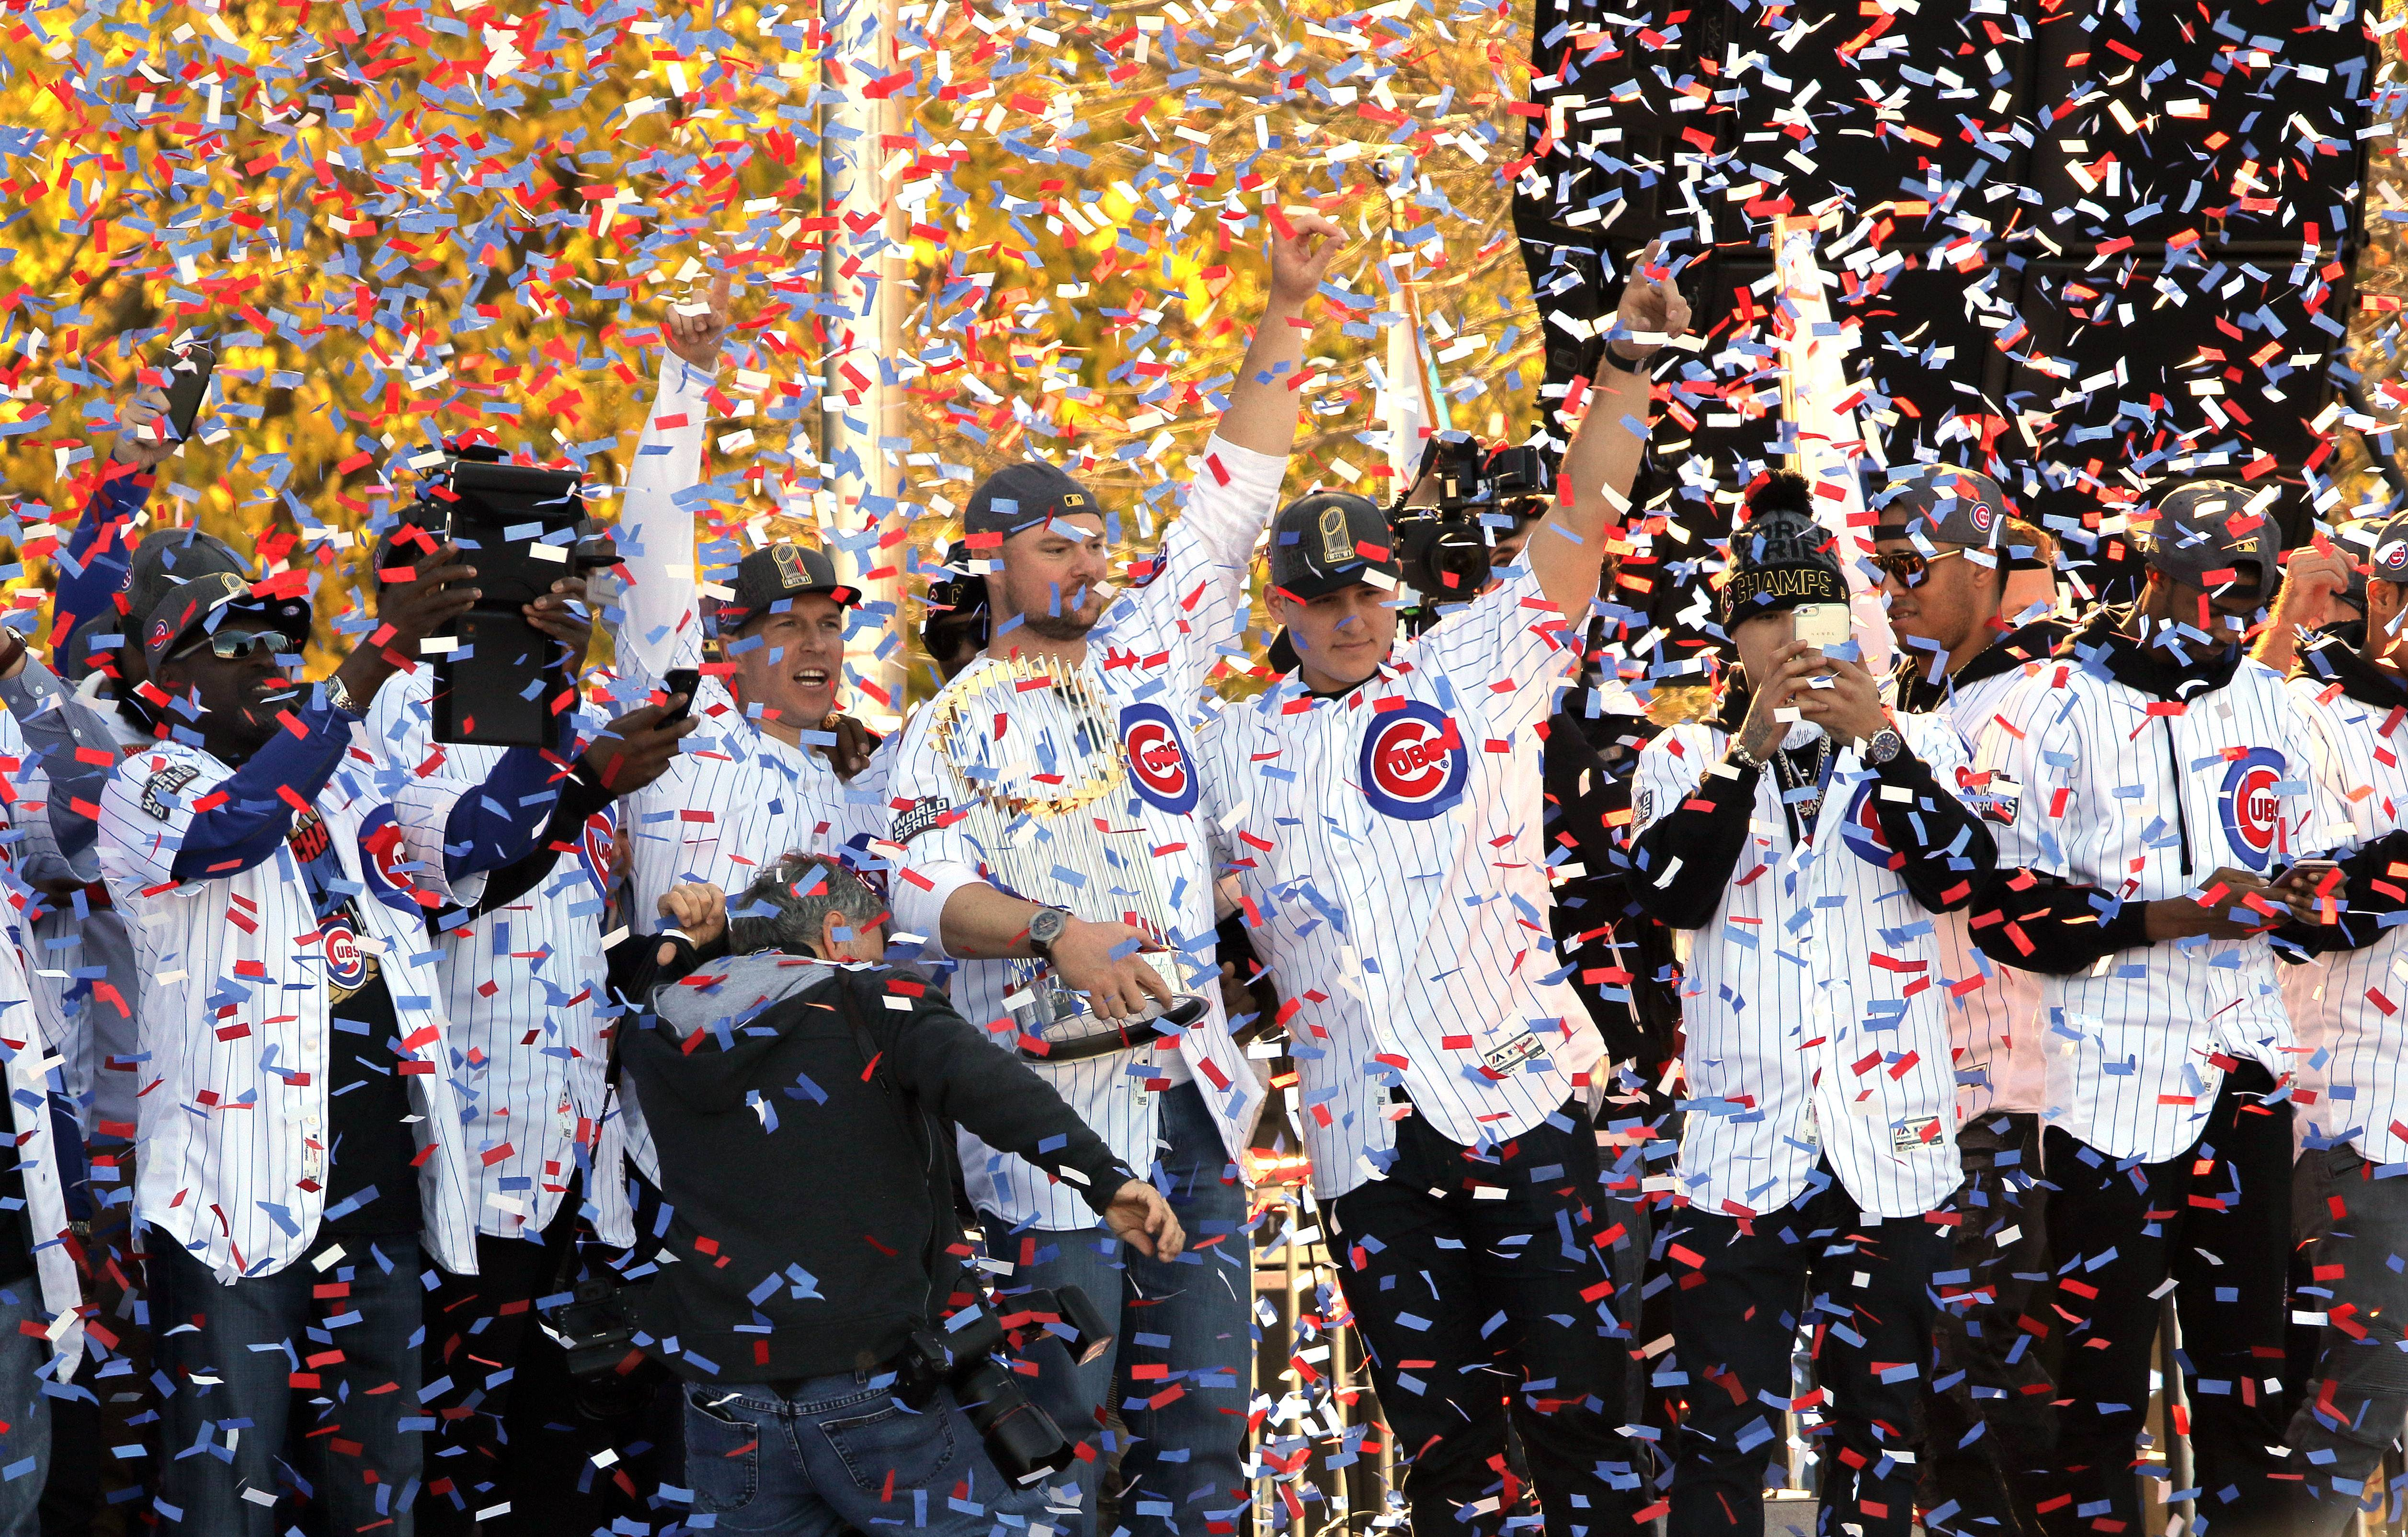 Images: Chicago Cubs' World Series victory celebration